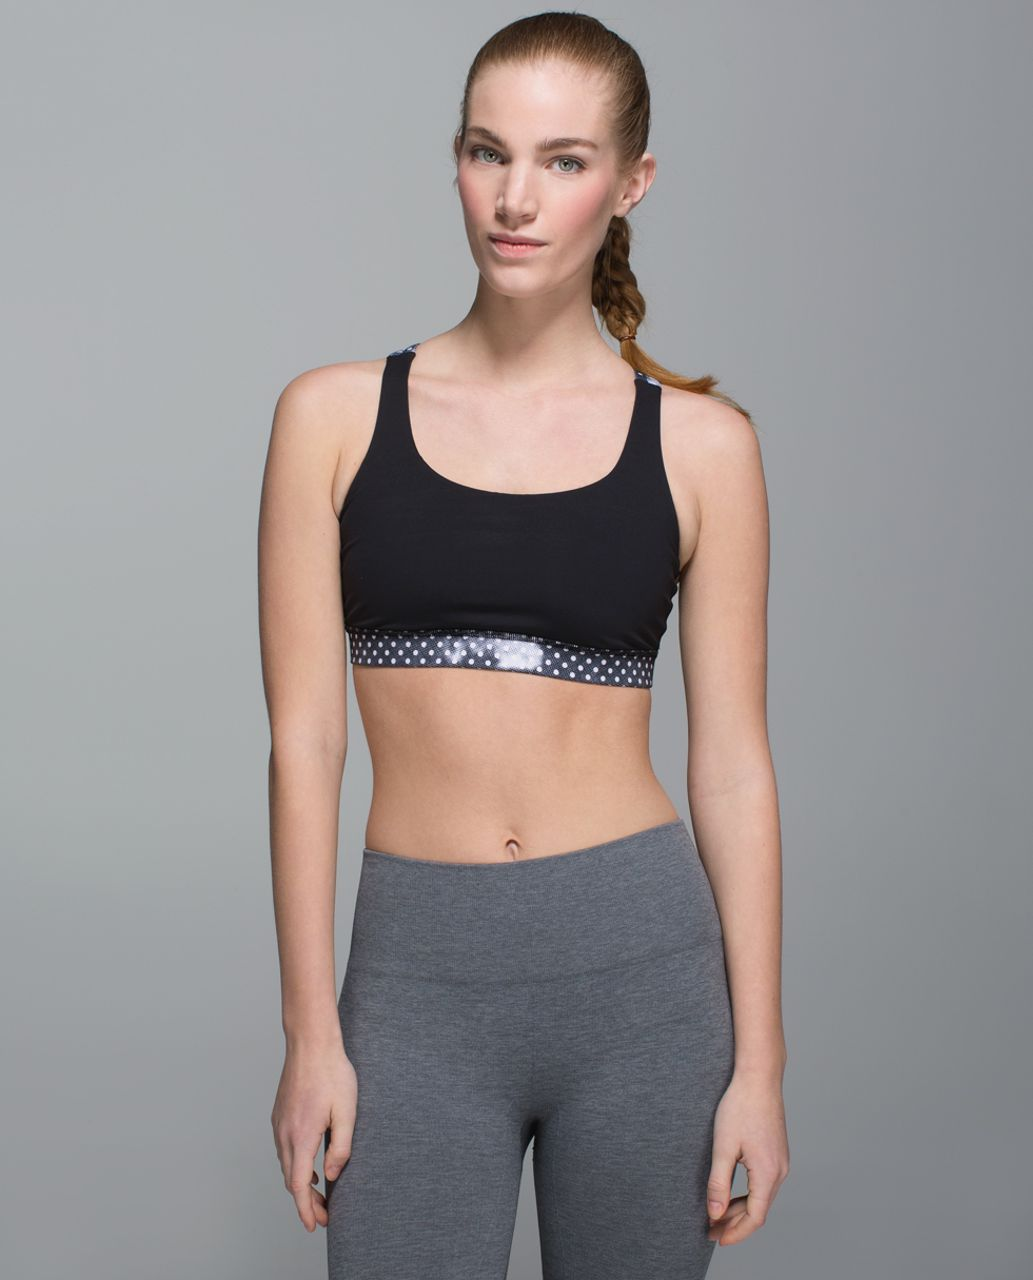 Lululemon Energy Bra - Black / Dream Rose Stripe Neutral Blush Black